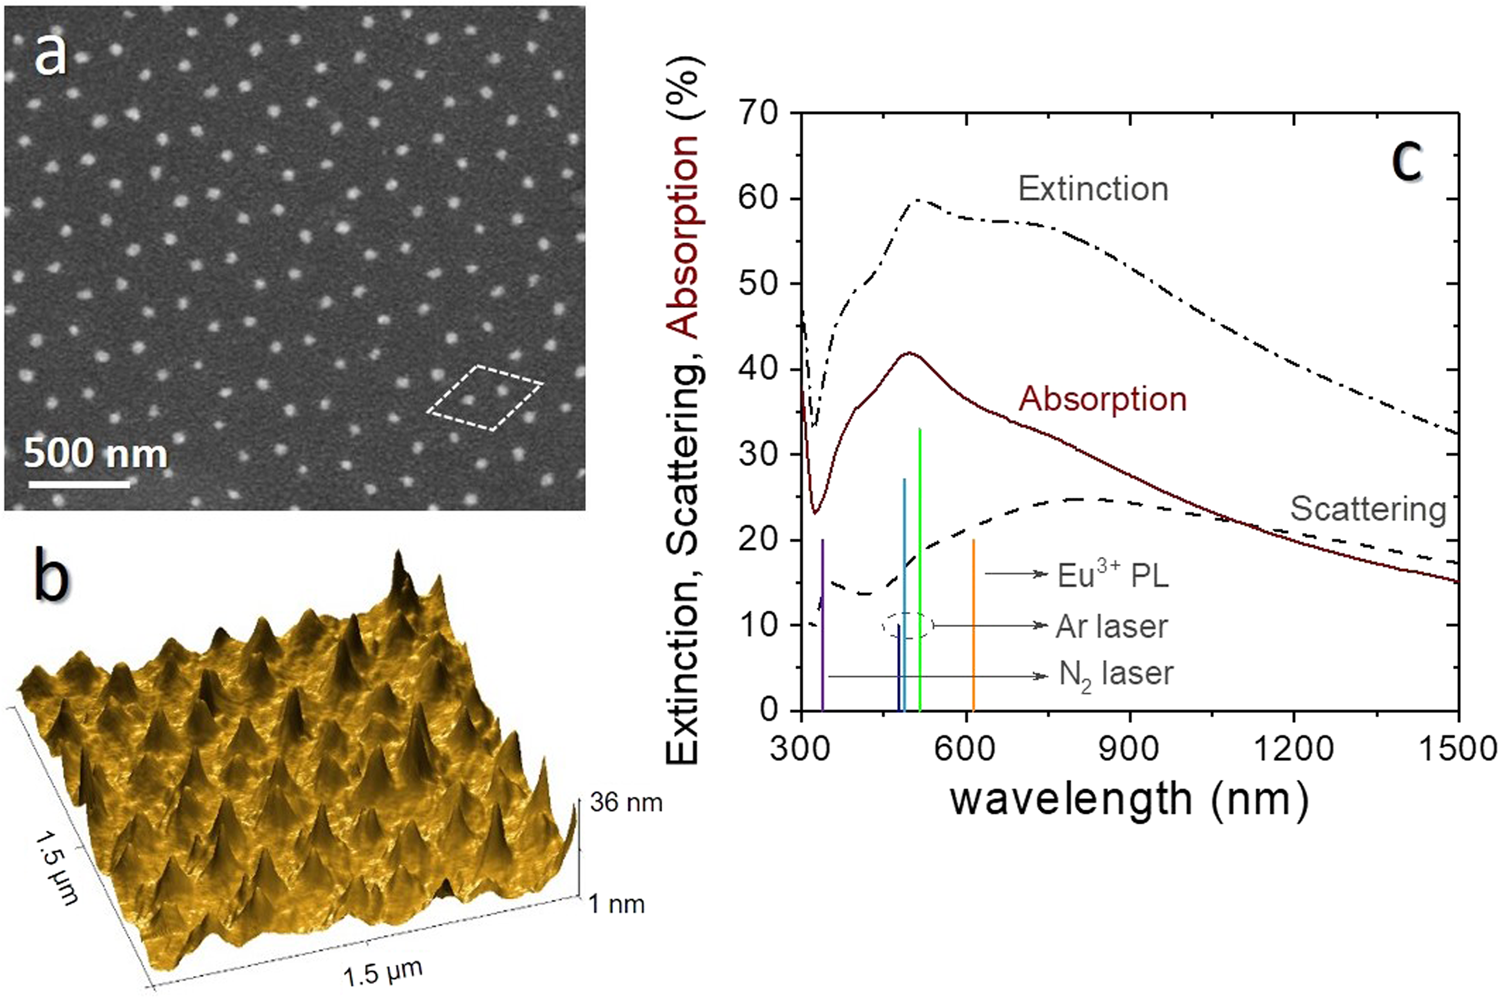 rare earth fluorescence thermometry of laser induced plasmon heatingrare earth fluorescence thermometry of laser induced plasmon heating in silver nanoparticles arrays scientific reports